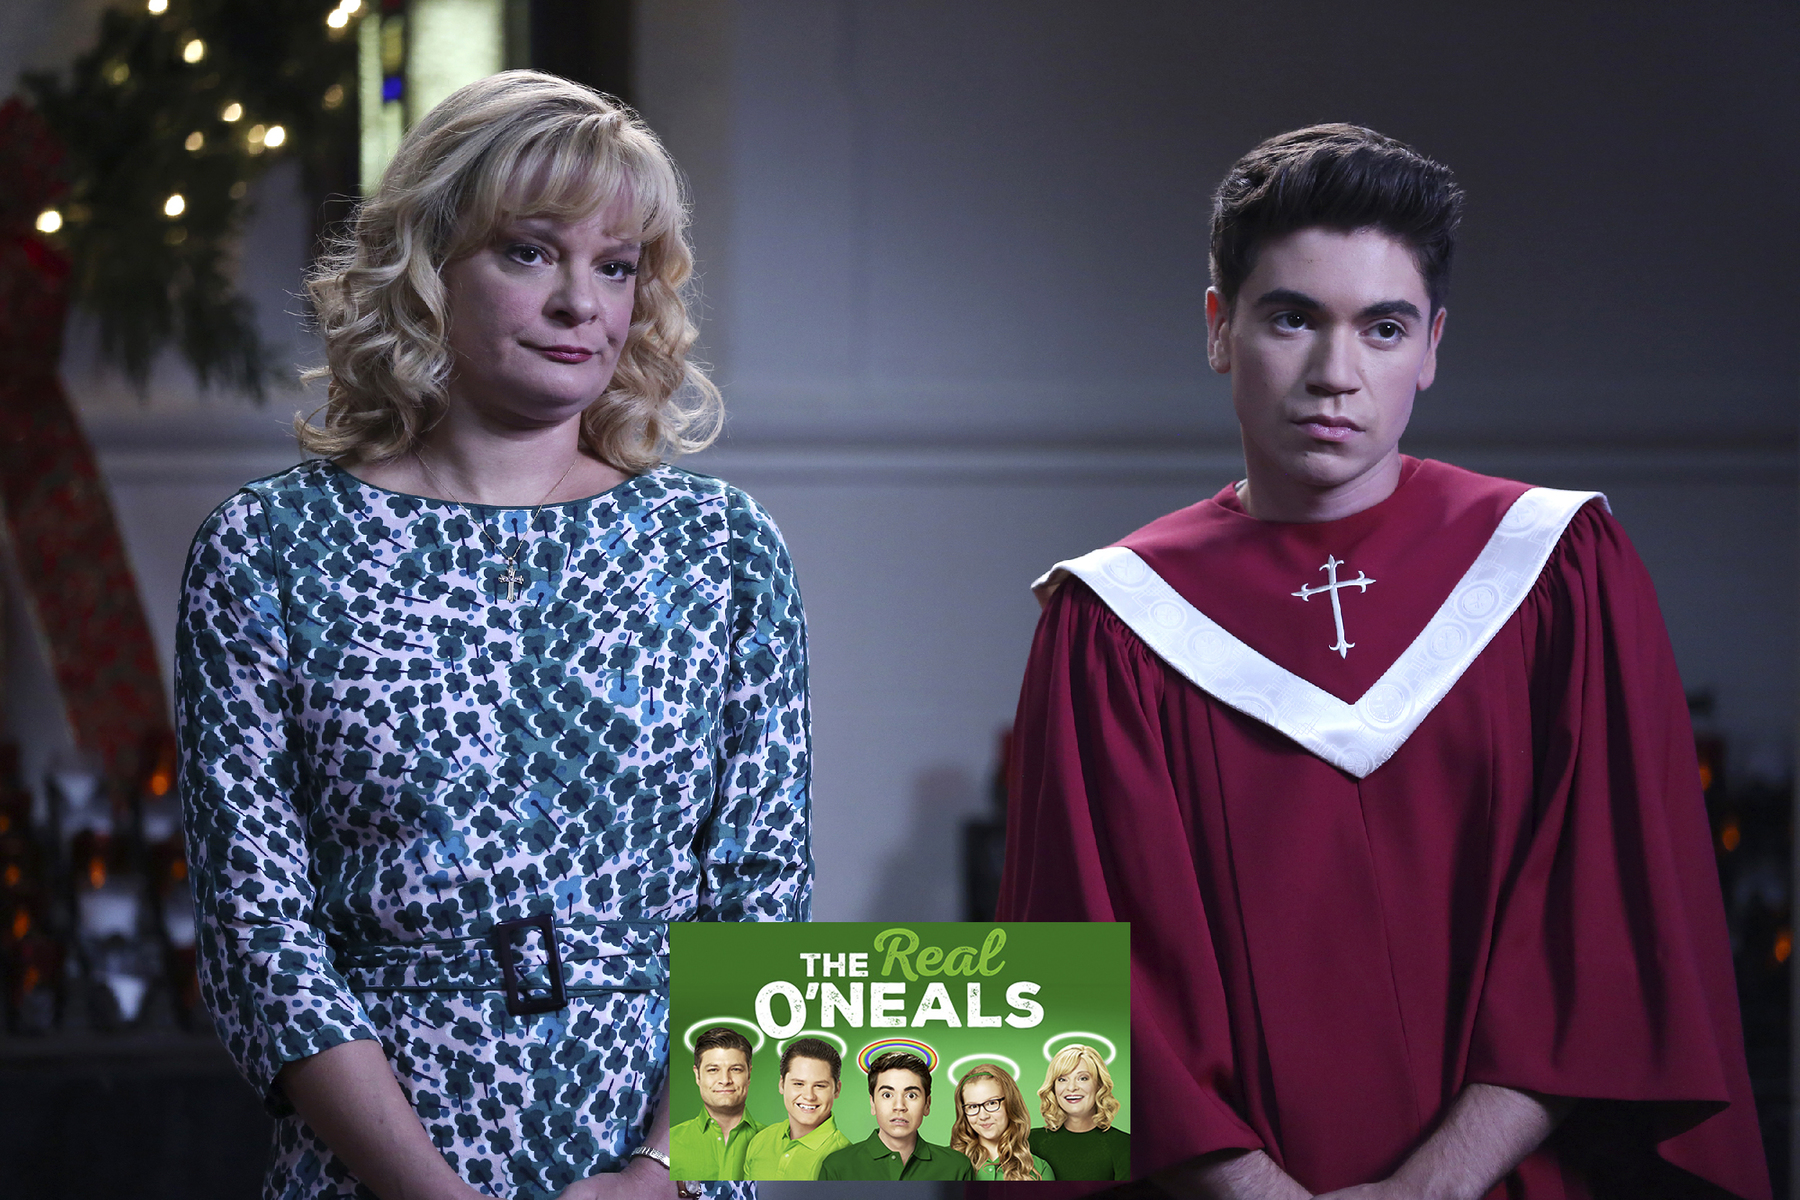 "THE REAL O'NEALS - ""The Real Christmas"" - Eileen will stop at nothing to win the Christmas Choir competition and gives the coveted Christmas Choir solo to their newest member Brett (Sean Grandillo), to Kenny's dismay, while Jimmy is tasked with spying on their toughest competitor, Sheila Demars (Angela Kinsey). But, when Kenny attempts to sabotage Brett's role, he finds a potential love interest. Meanwhile, Shannon accidentally gives Pat the wrong impression about a Christmas present she plans on giving to Ethan, on ""The Real O'Neals,"" airing TUESDAY, DECEMBER 13 (9:30-10:00 p.m. EDT), on the ABC Television Network. (ABC/John Fleenor)